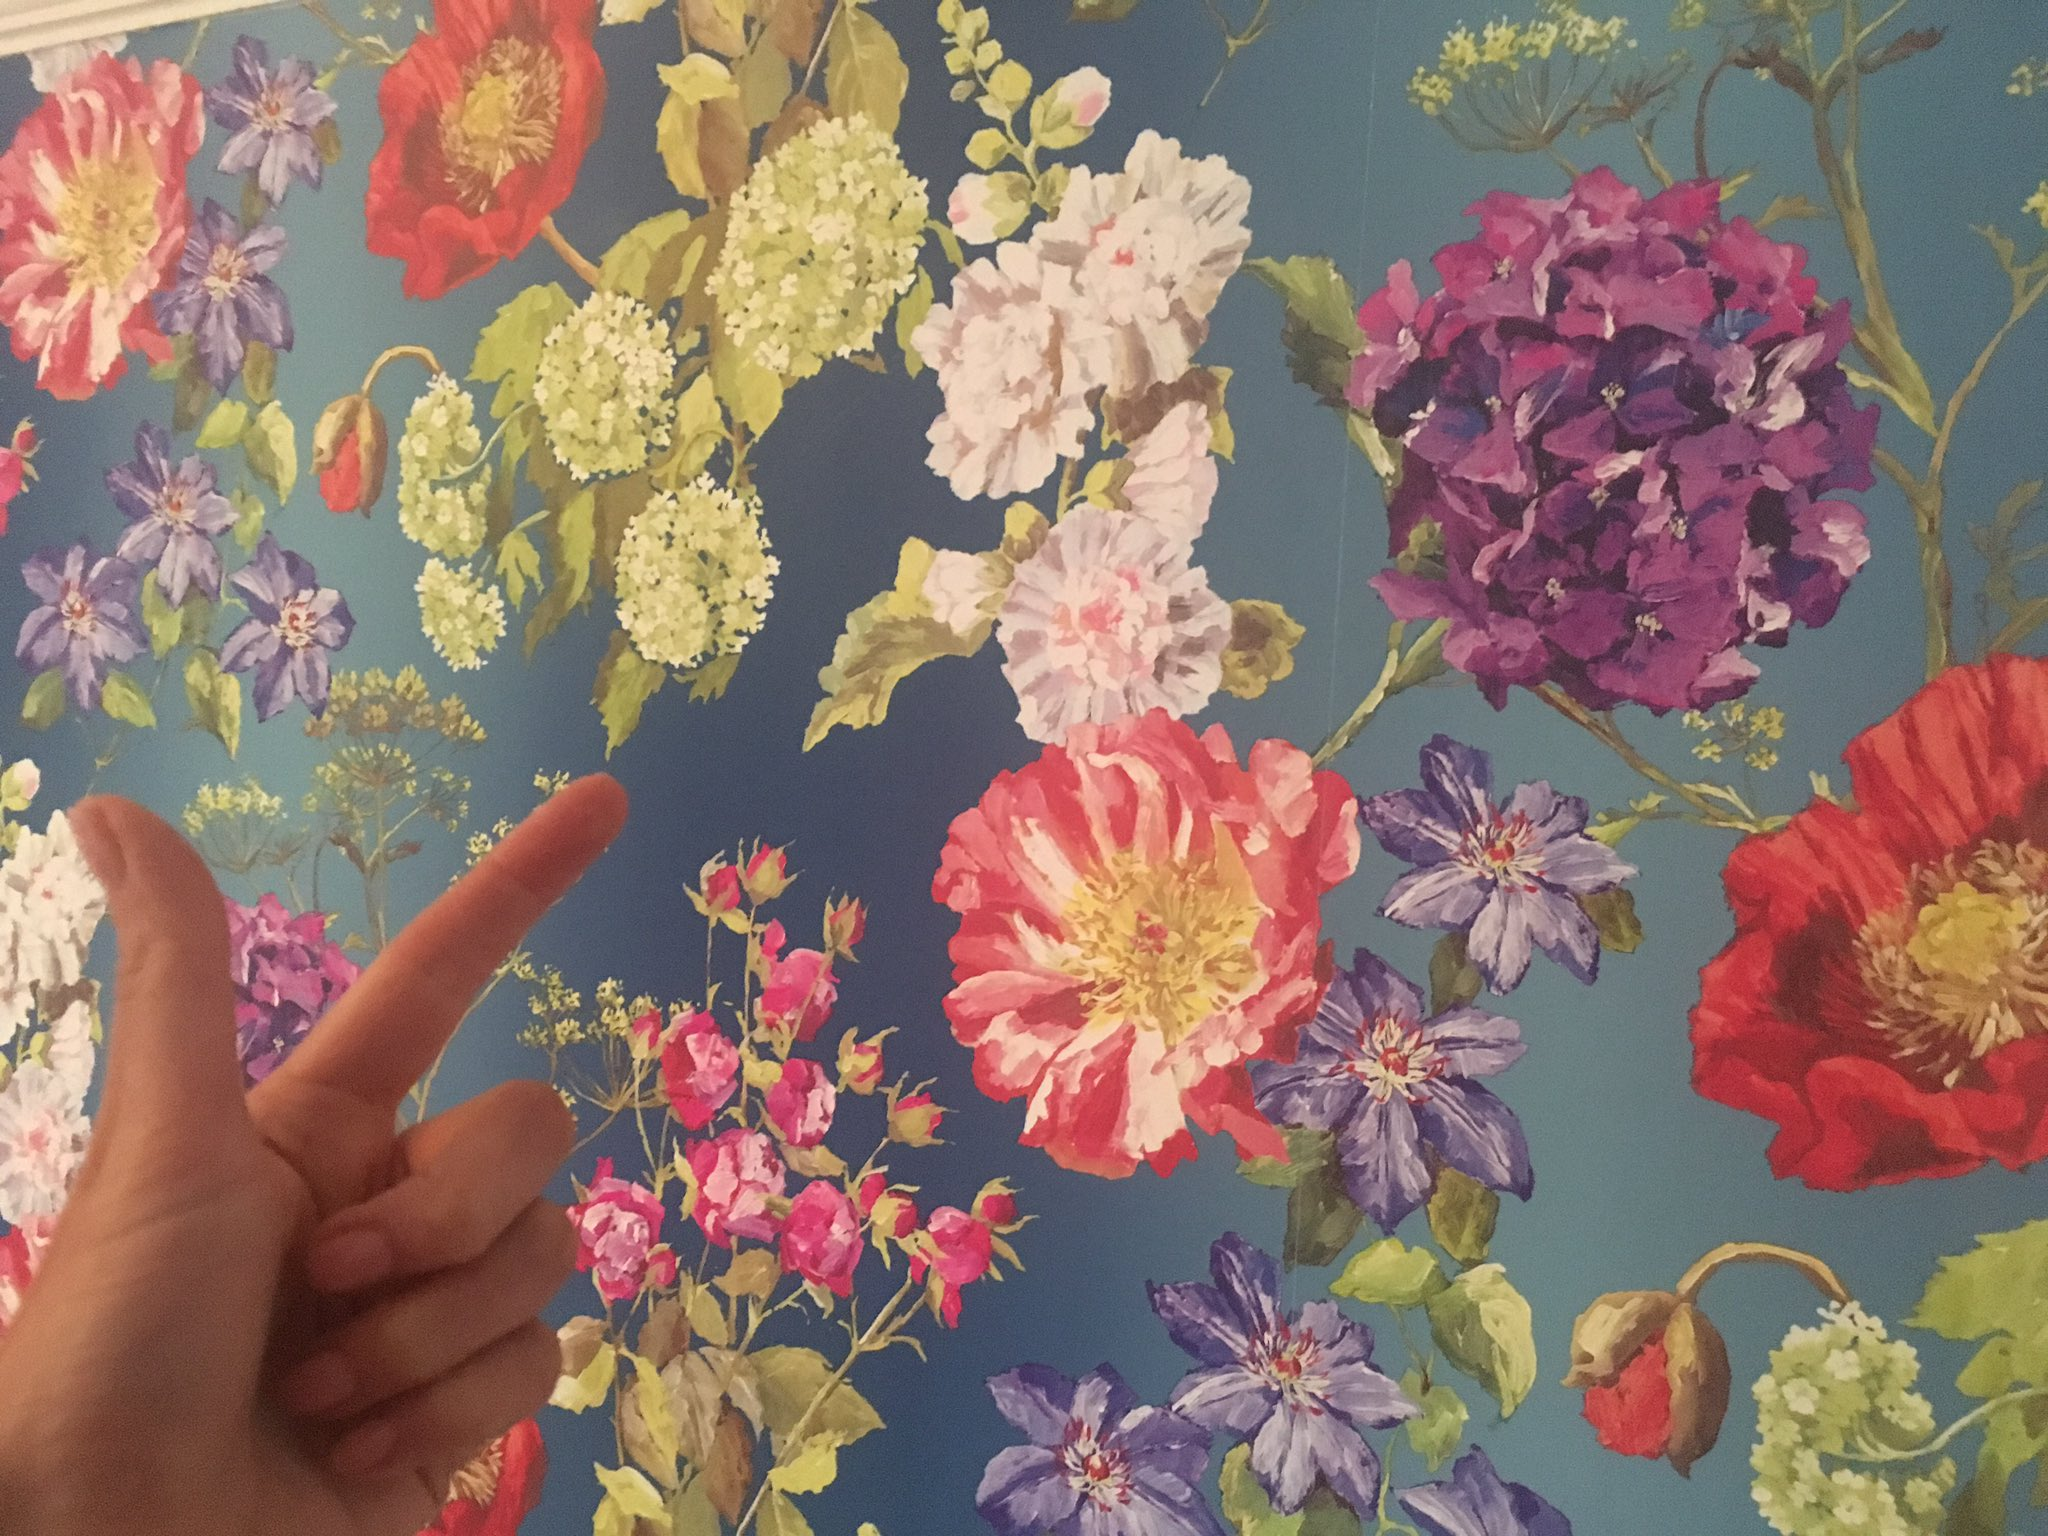 While the world goes bloody mad, I'd like to share my new floral wallpaper. https://t.co/o7HxDgPOQC